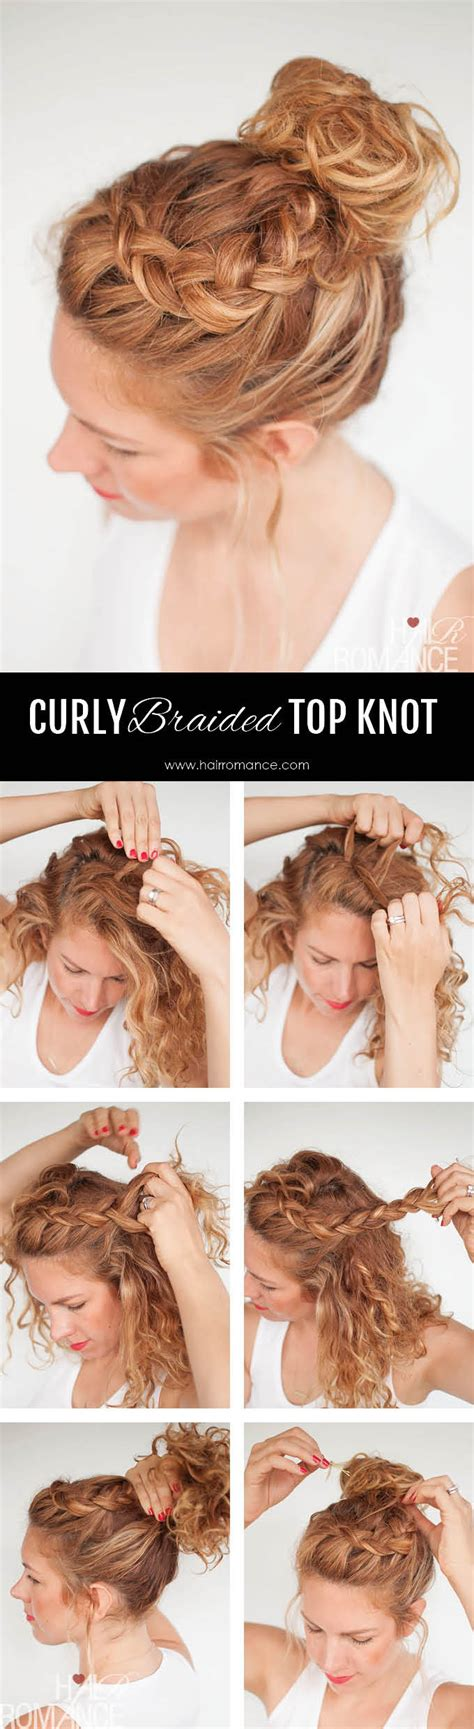 Curly Wedding Hairstyle For Medium Hair Tutorial by Everyday Curly Hairstyles Curly Braided Top Knot